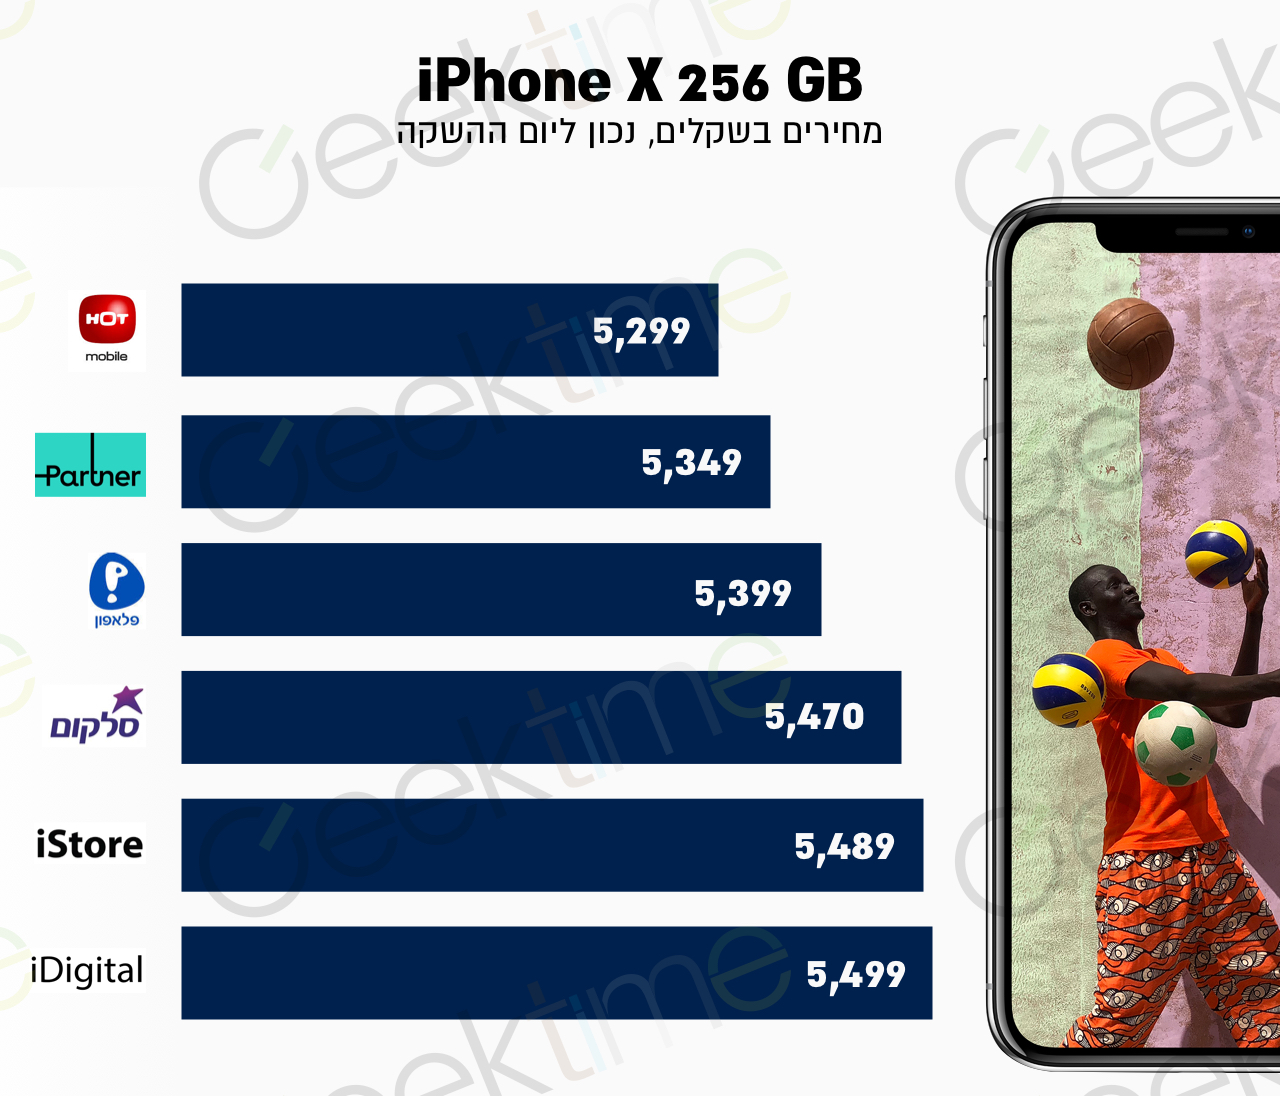 iphone x prices in israel 256gb